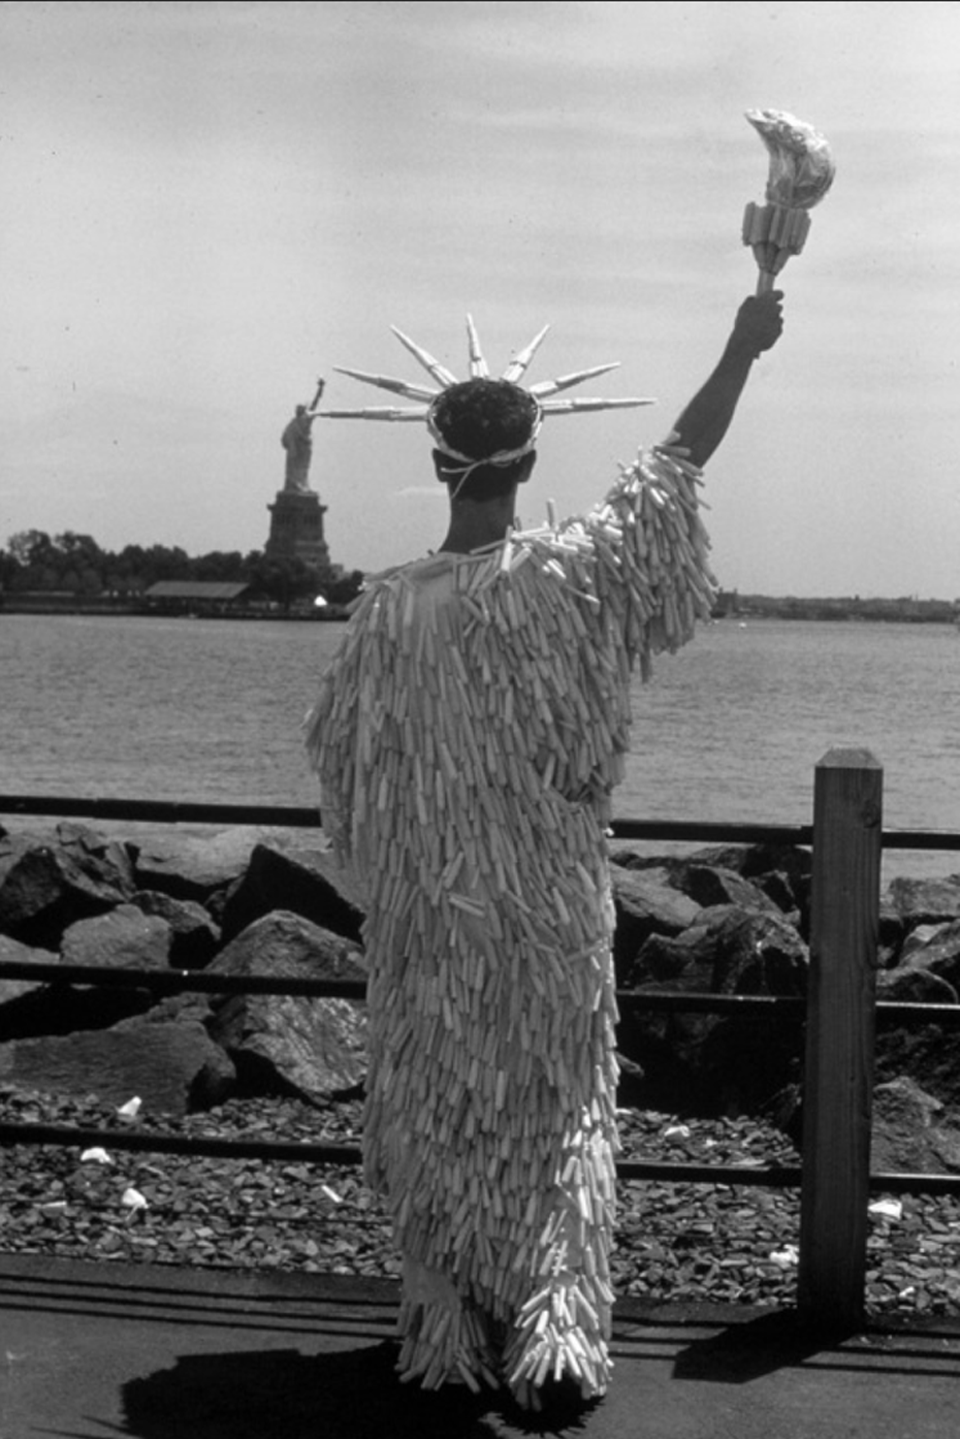 Miss Tampon Liberty, artist at Liberty State Park, NJ, with gown of 3,000 plastic tampon applicators washed up on beaches, 1989.